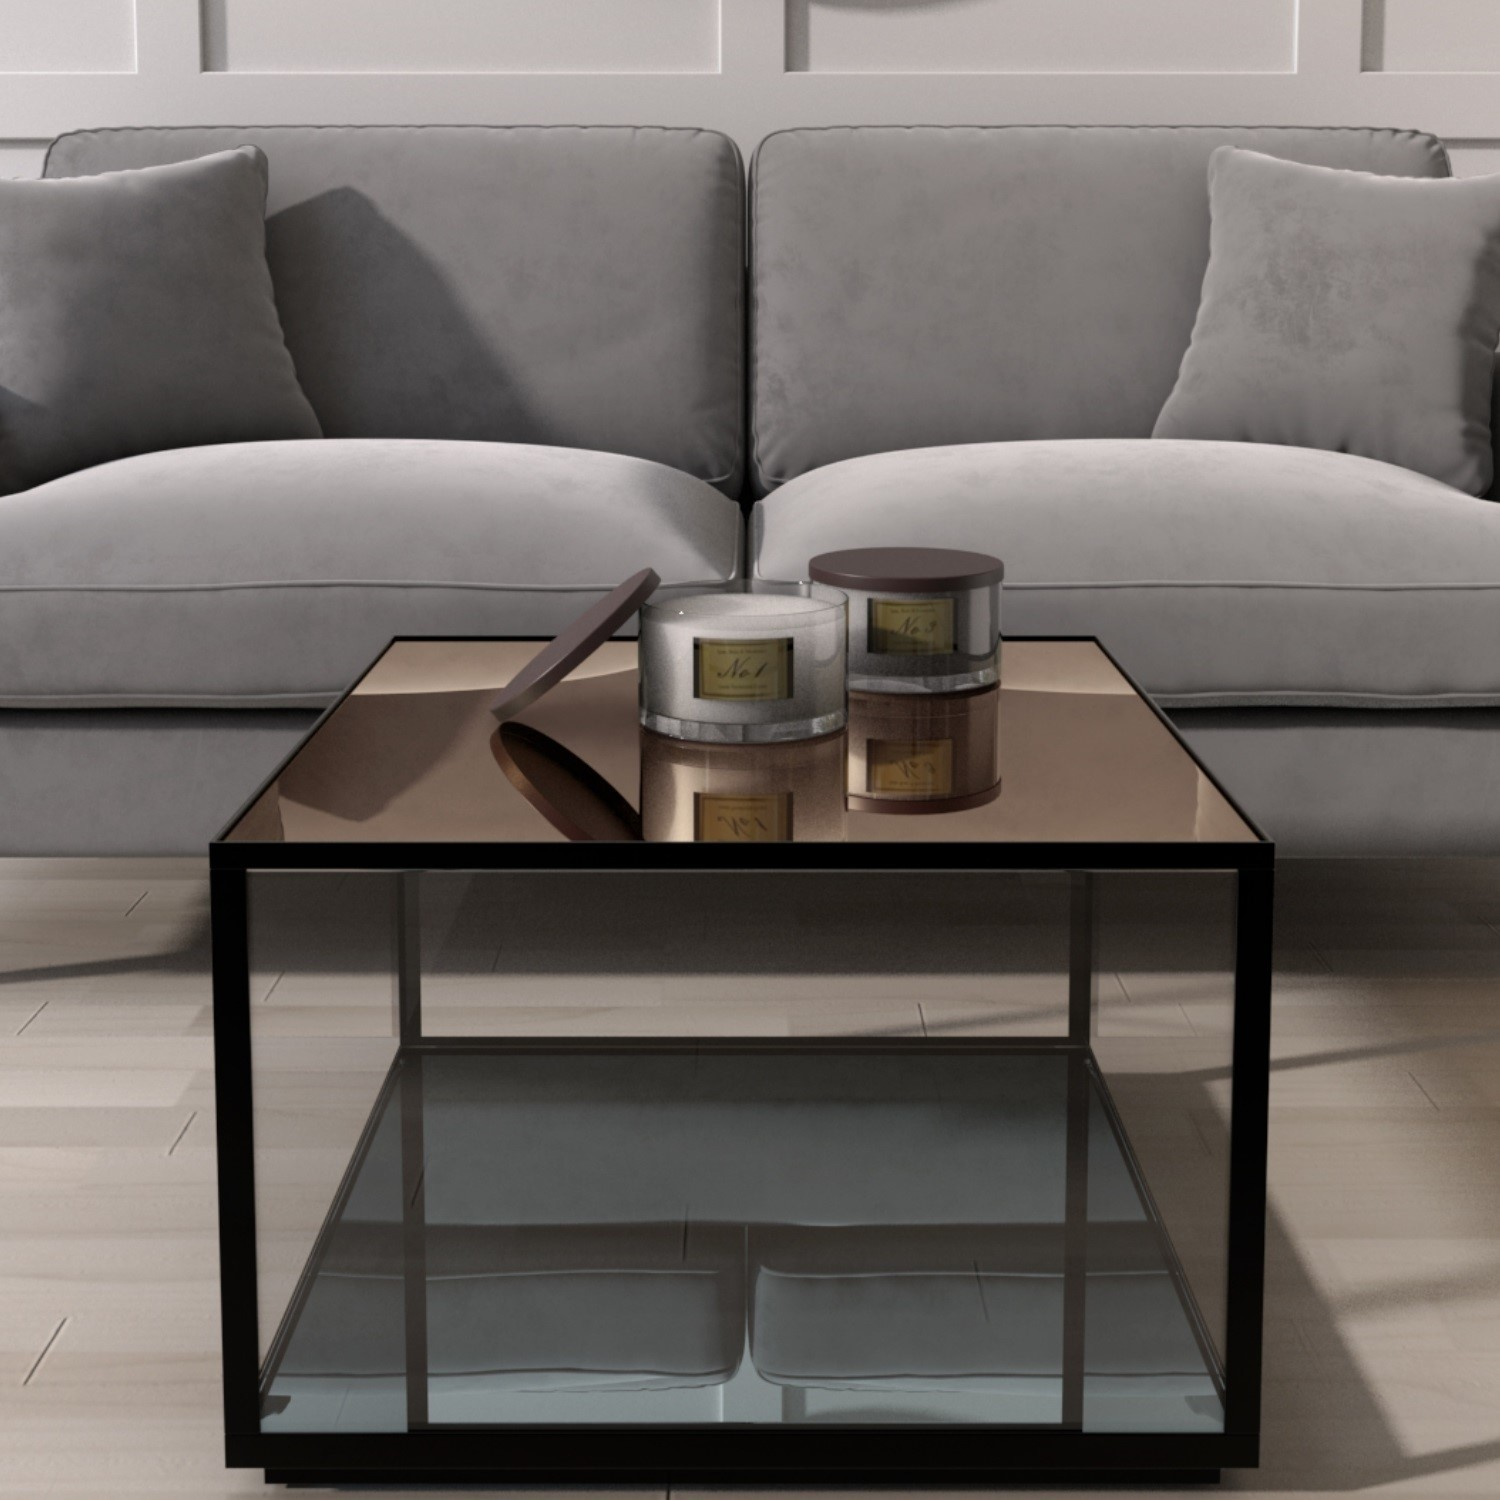 Mirrored Coffee Table With Black Metal Frame Square Ken001 Ebay